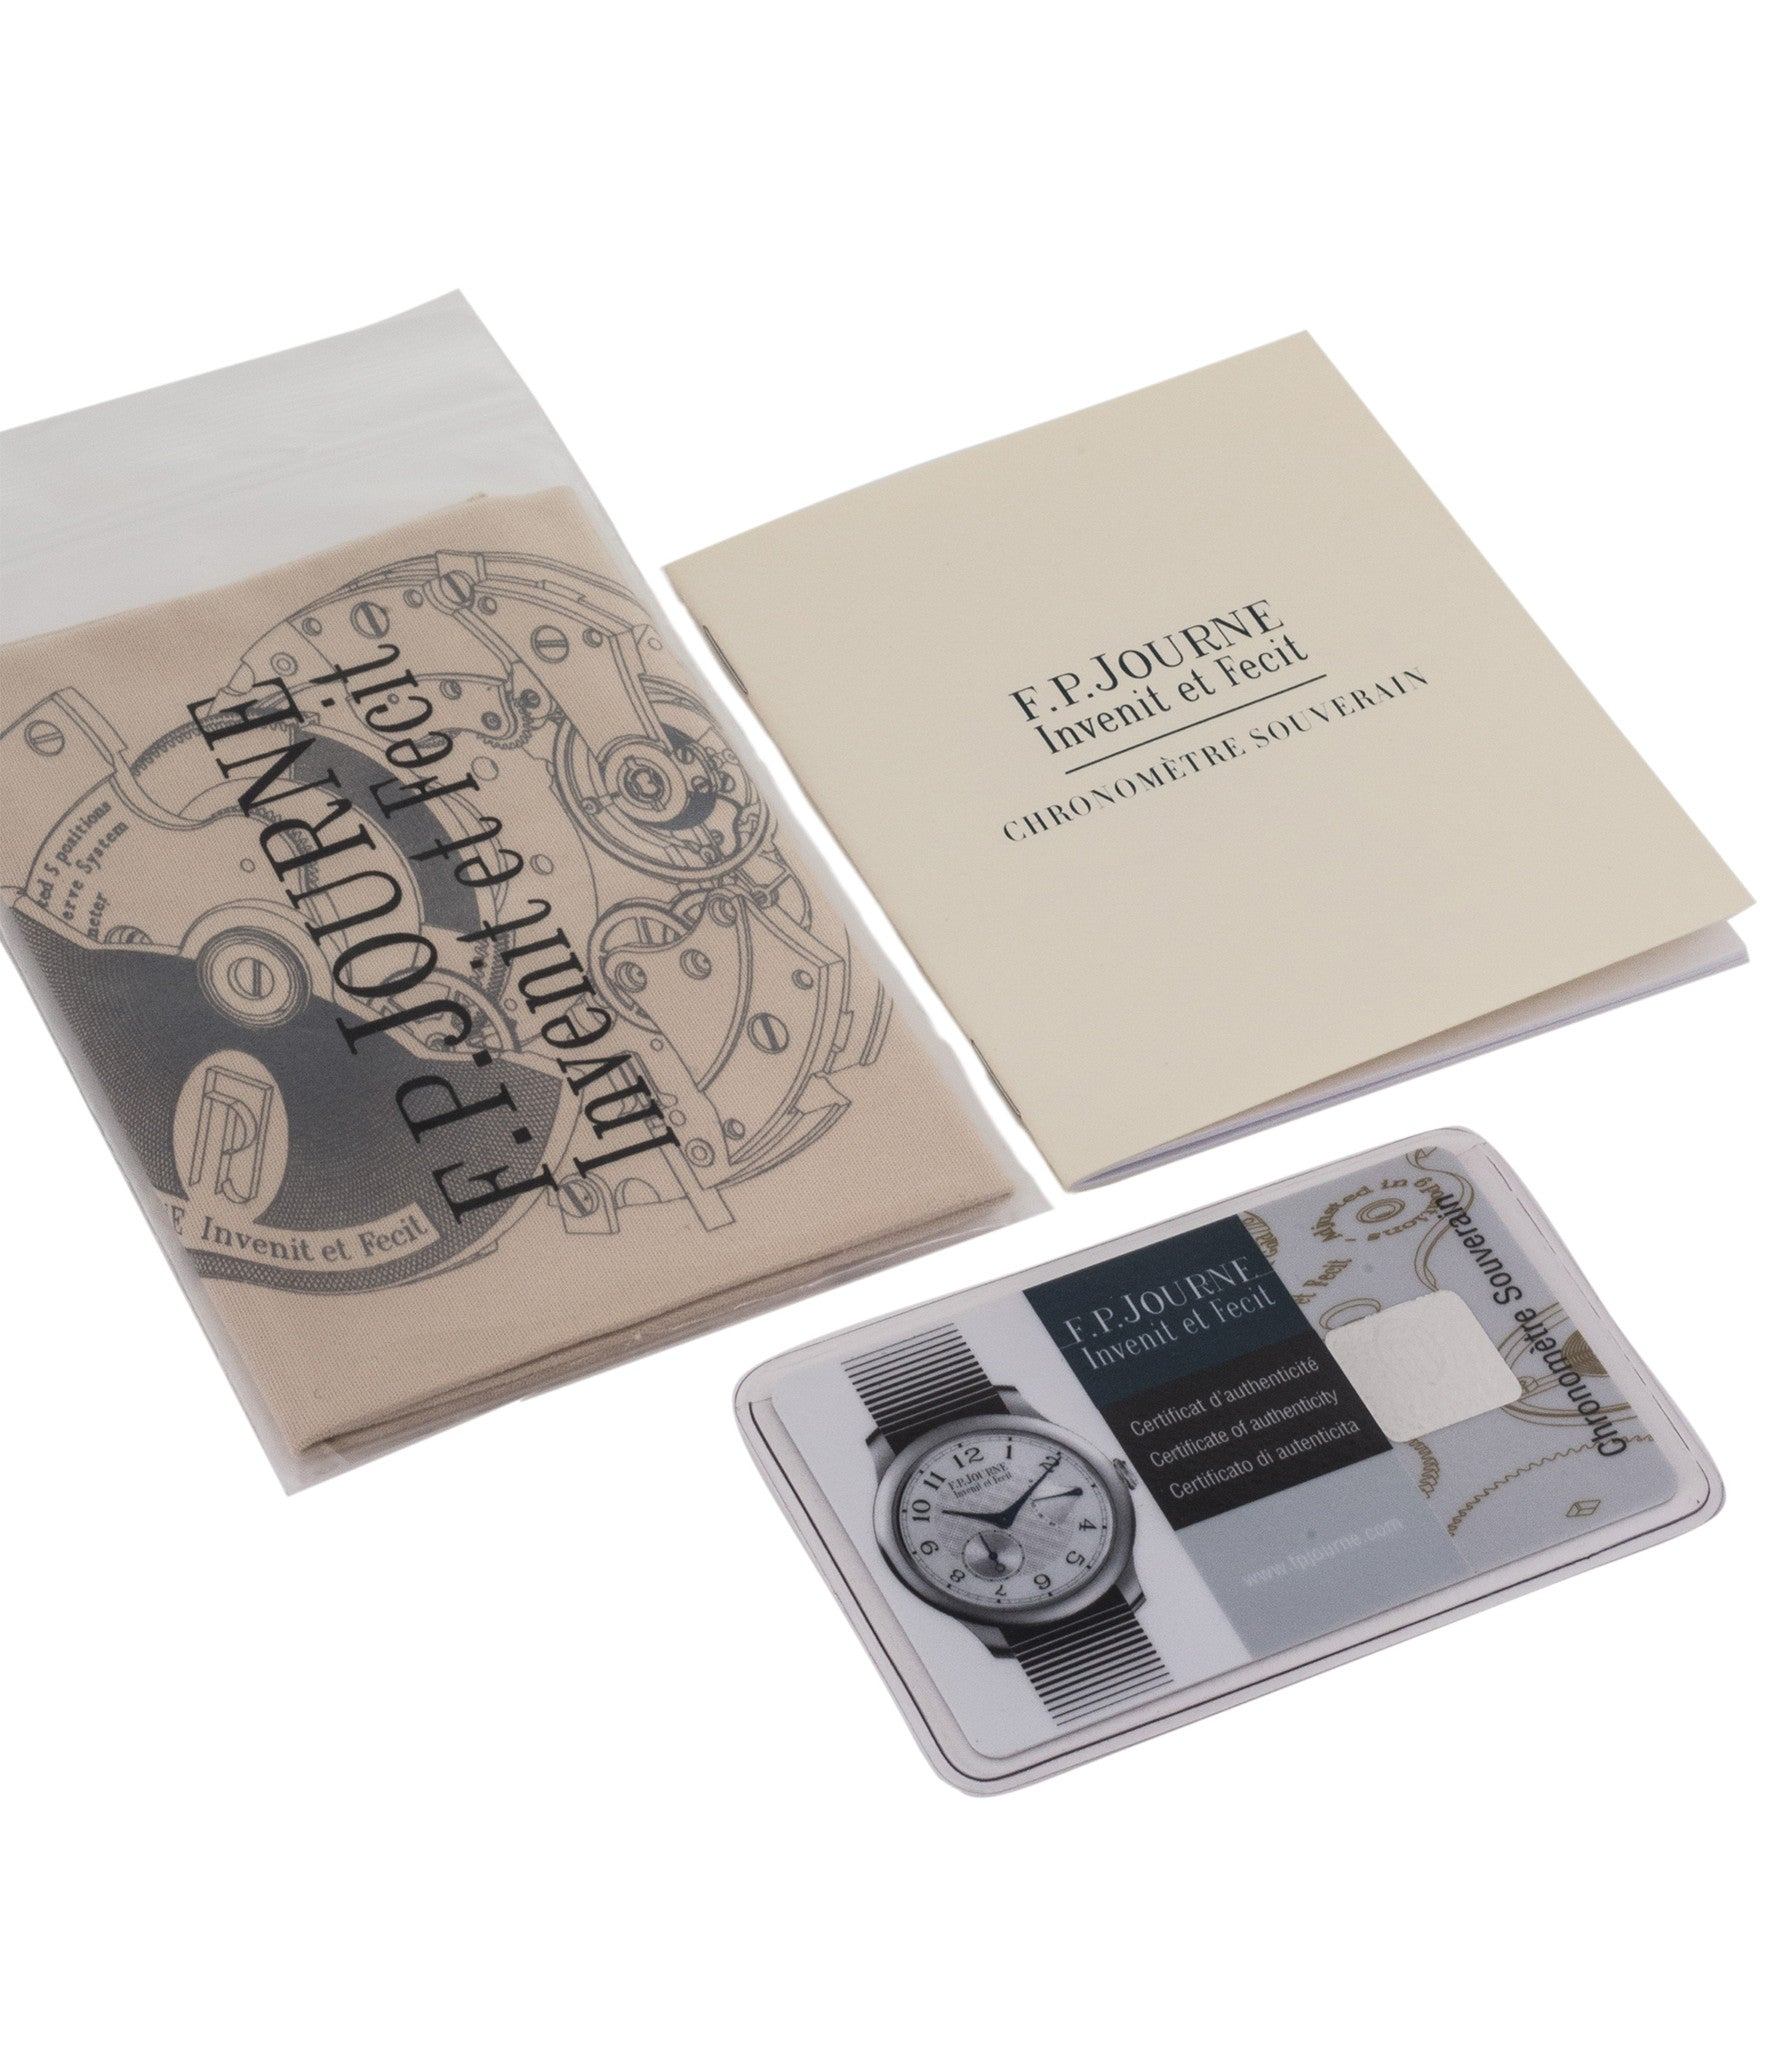 buy F. P. Journe Chronometre Souverain Black Label platinum rare independent watchmaker pre-owned dress time-only watch for sale online at WATCH XCHANGE London with original box and papers authenticity guaranteed